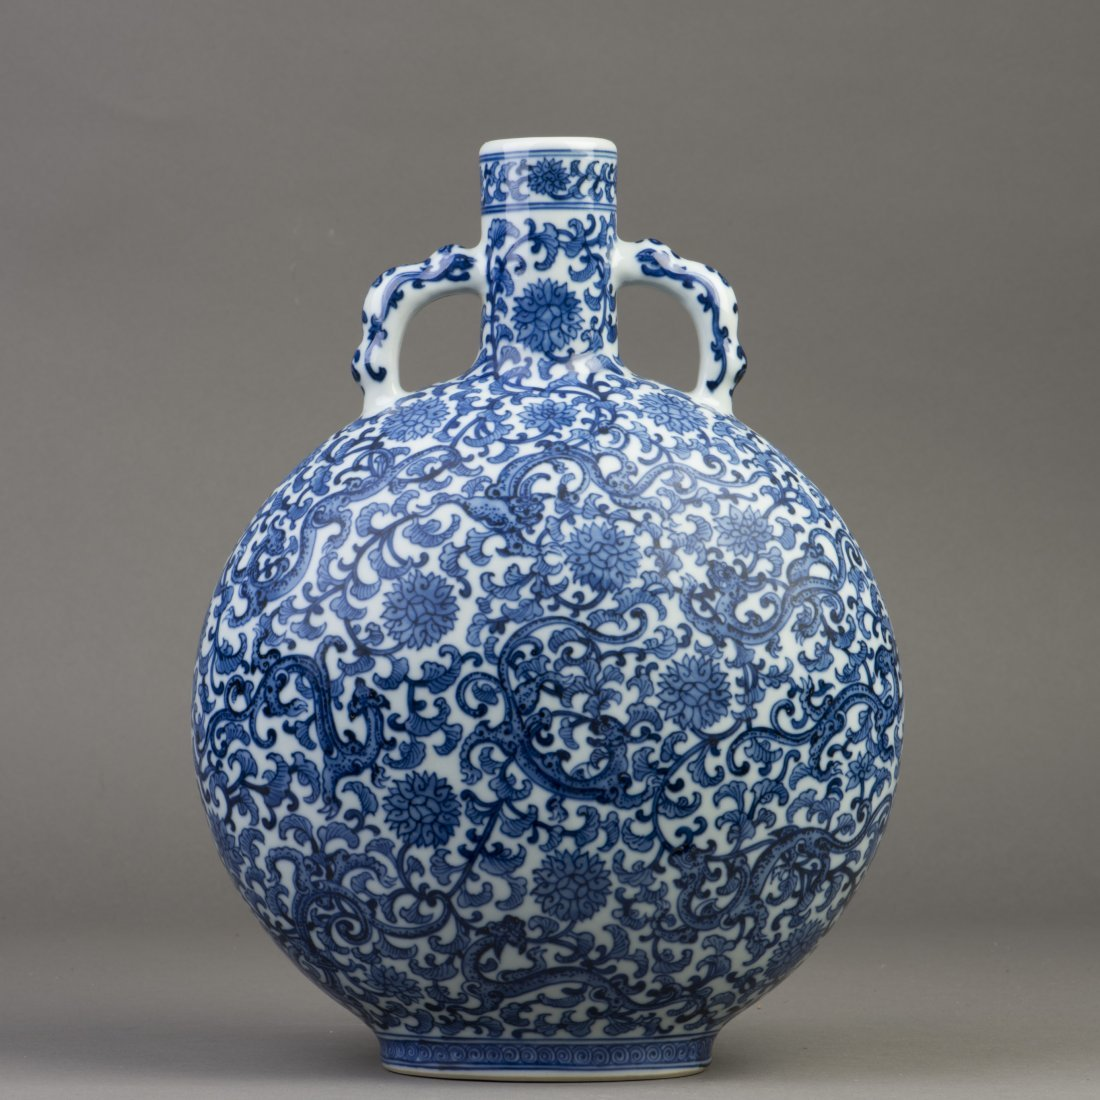 A BLUE AND WHITE MOONFLASK PORCELAIN VASE